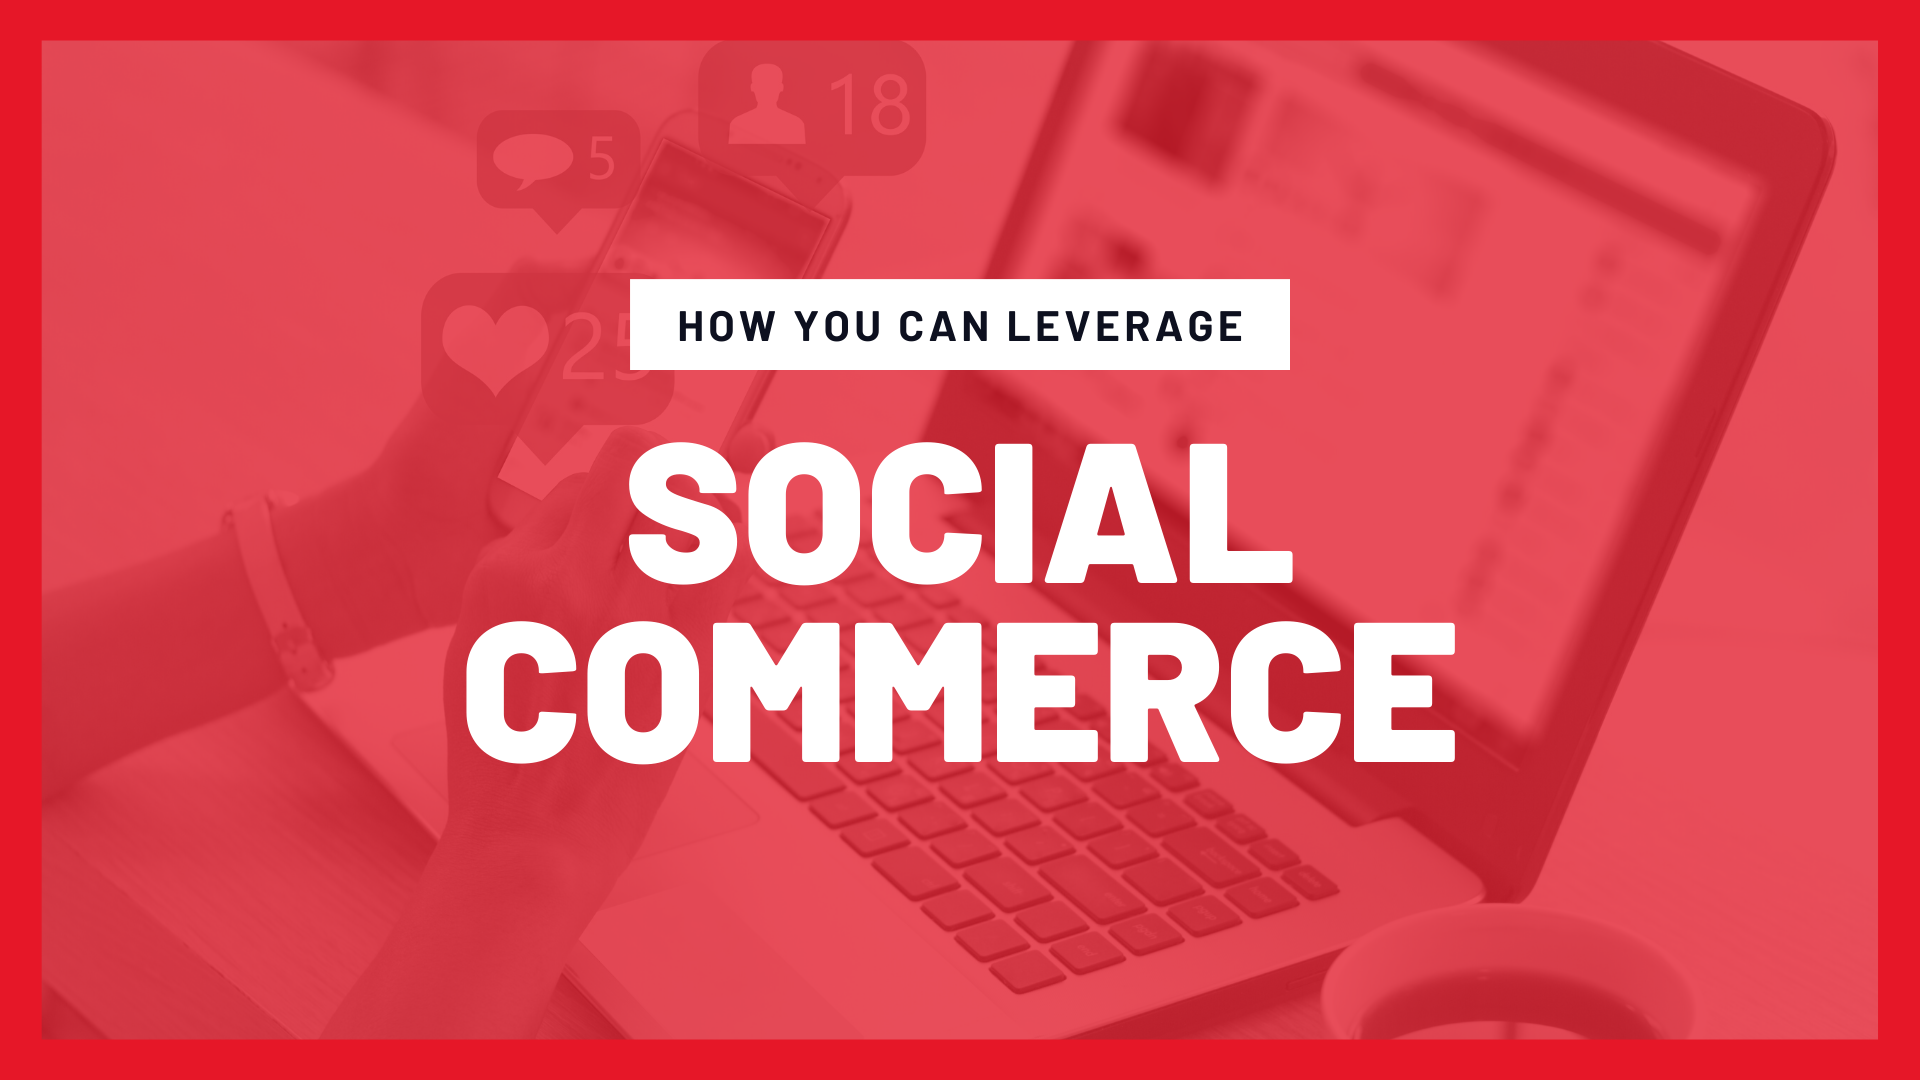 How You Can Leverage Social Commerce